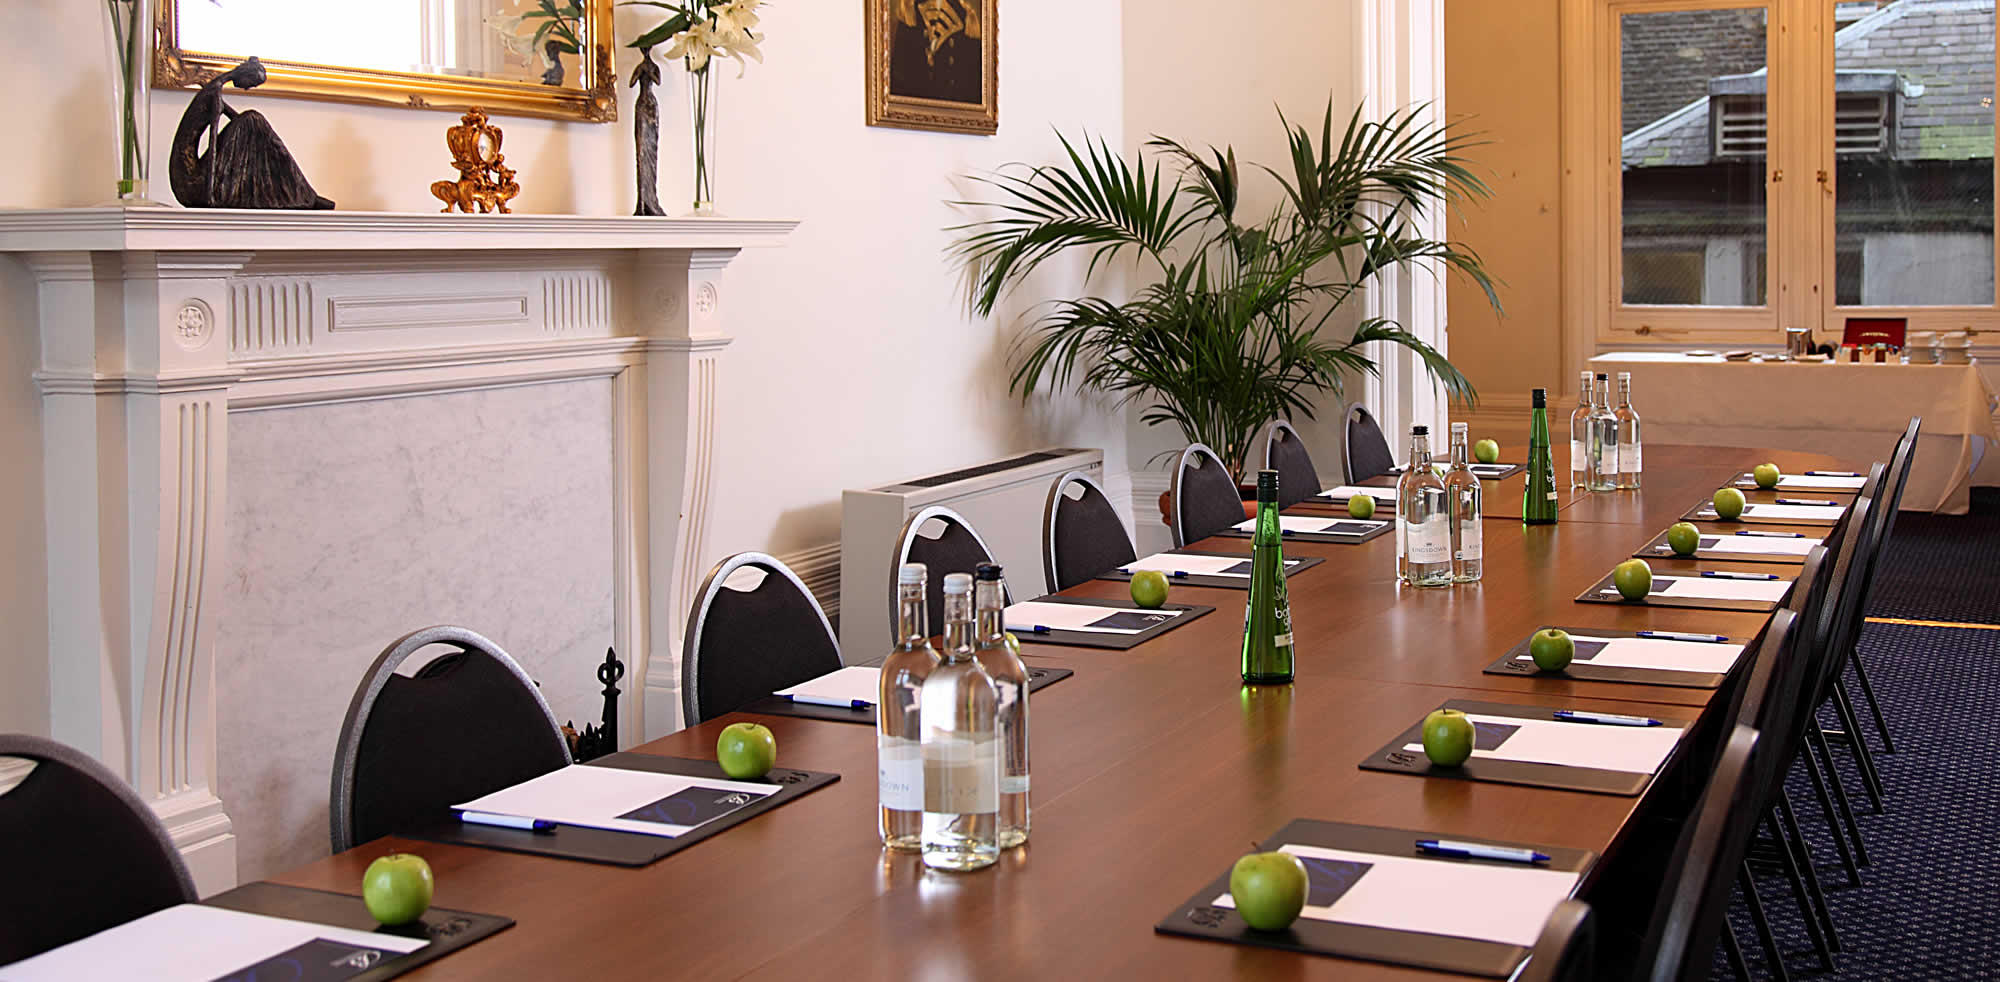 Bloomsbury House - Pestalozzi - Boardroom space for meetings